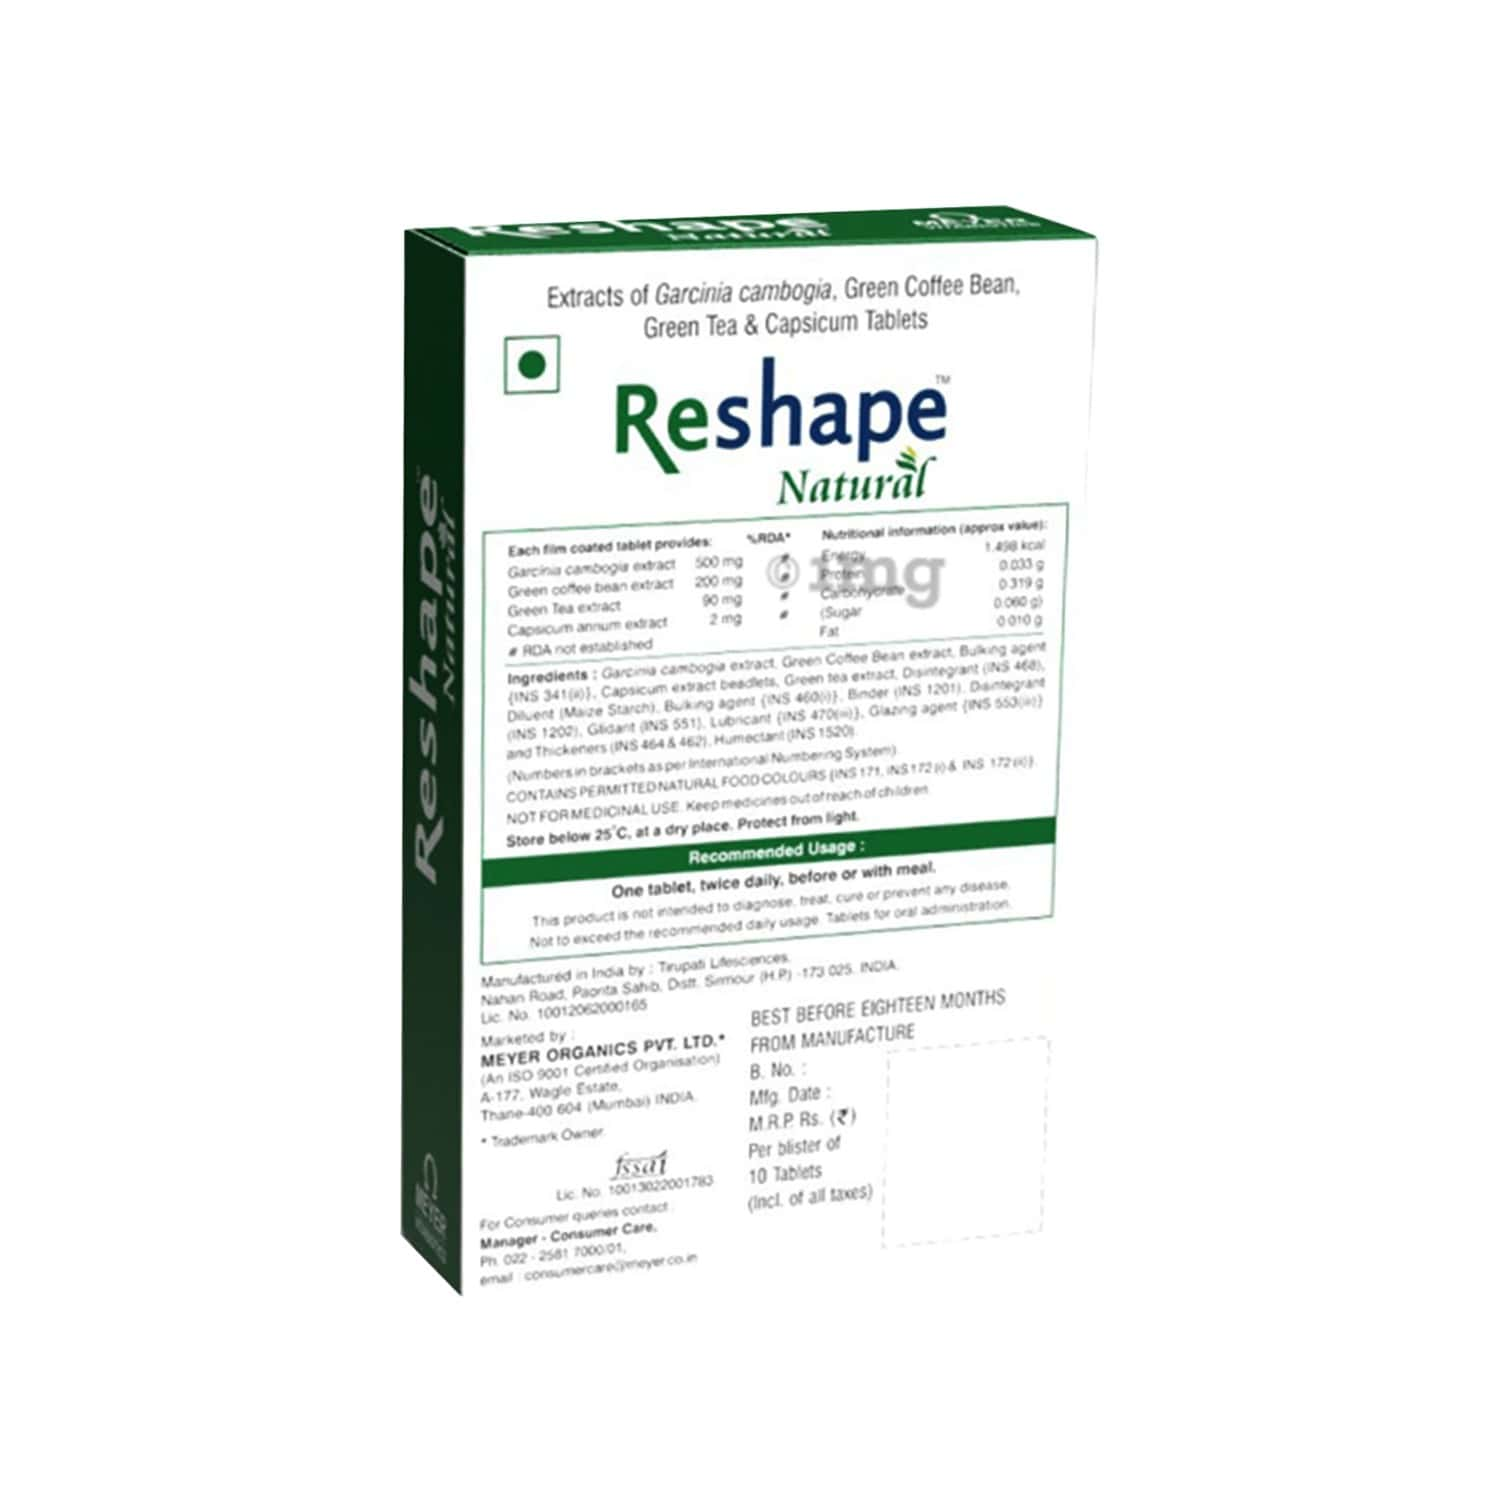 Reshape Natural - Health Supplement (with Coffee Bean And Green Tea Extracts) With Wellman 30 Tablet Free